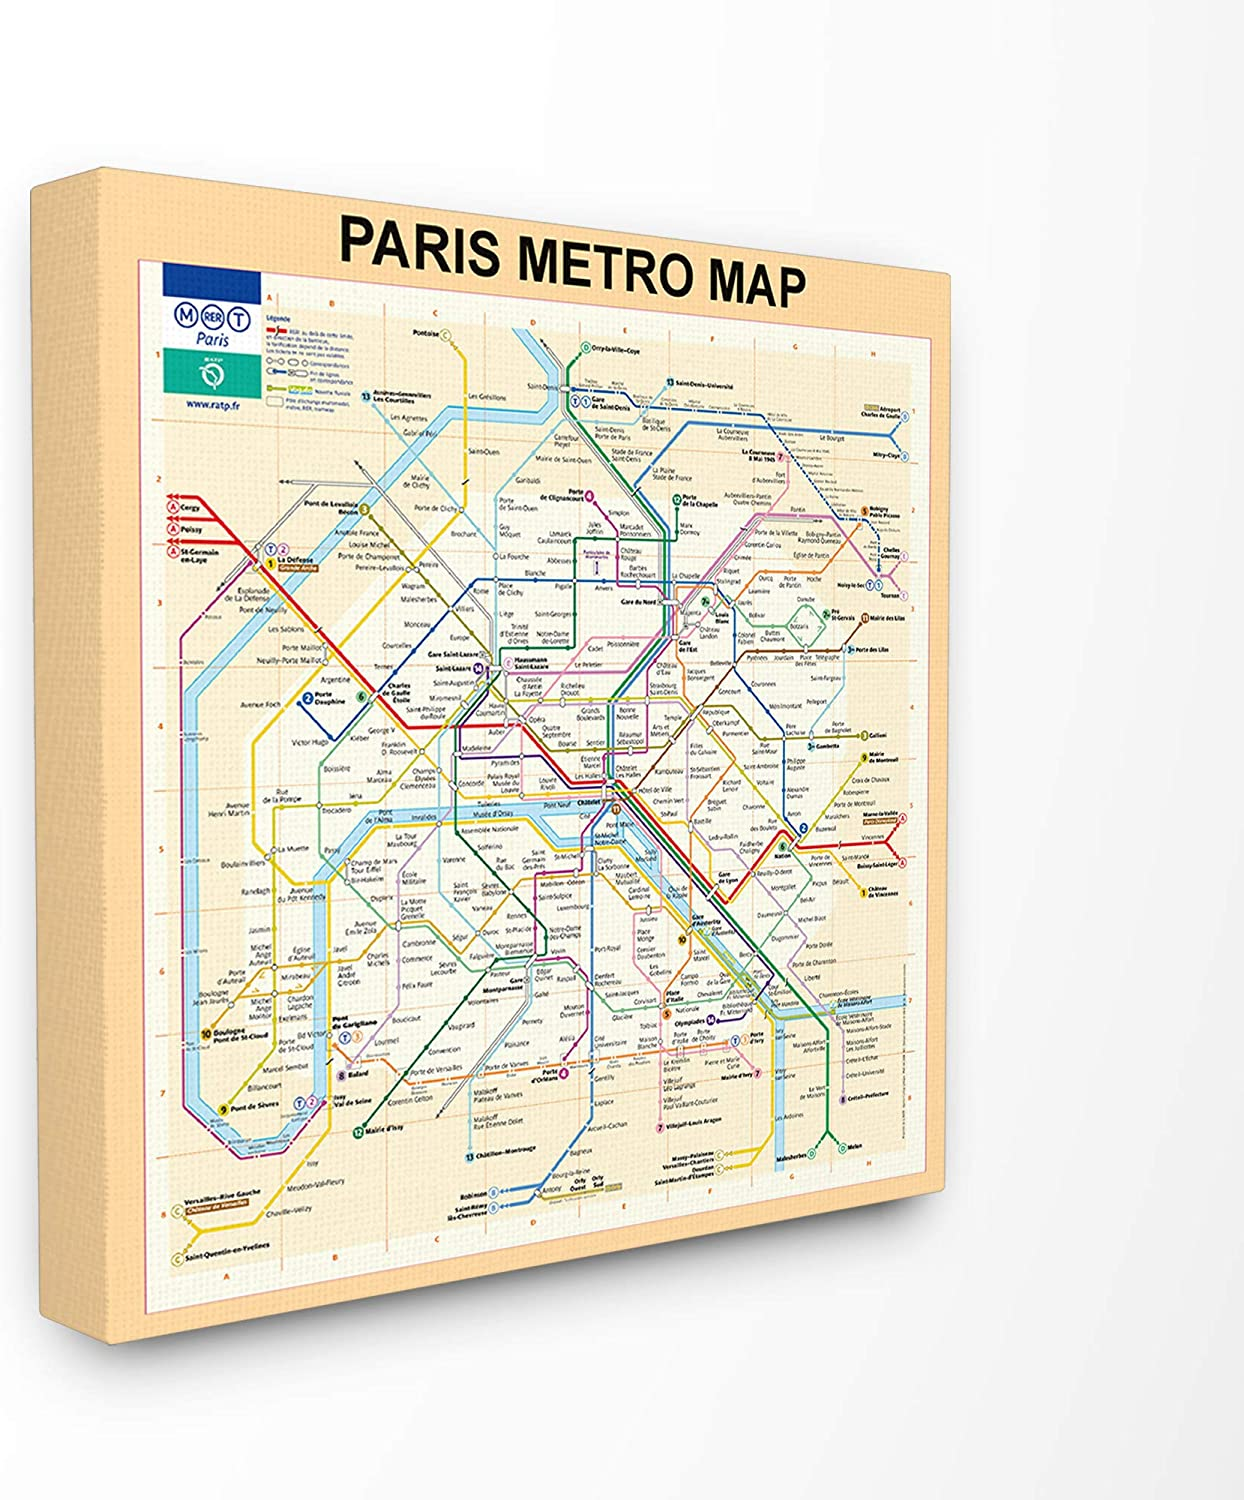 The Stupell Home Décor Collection Neutral Tan Travel Paris Metro Subway Map Stretched Canvas Wall Art, 17 x 17, Multi-Color